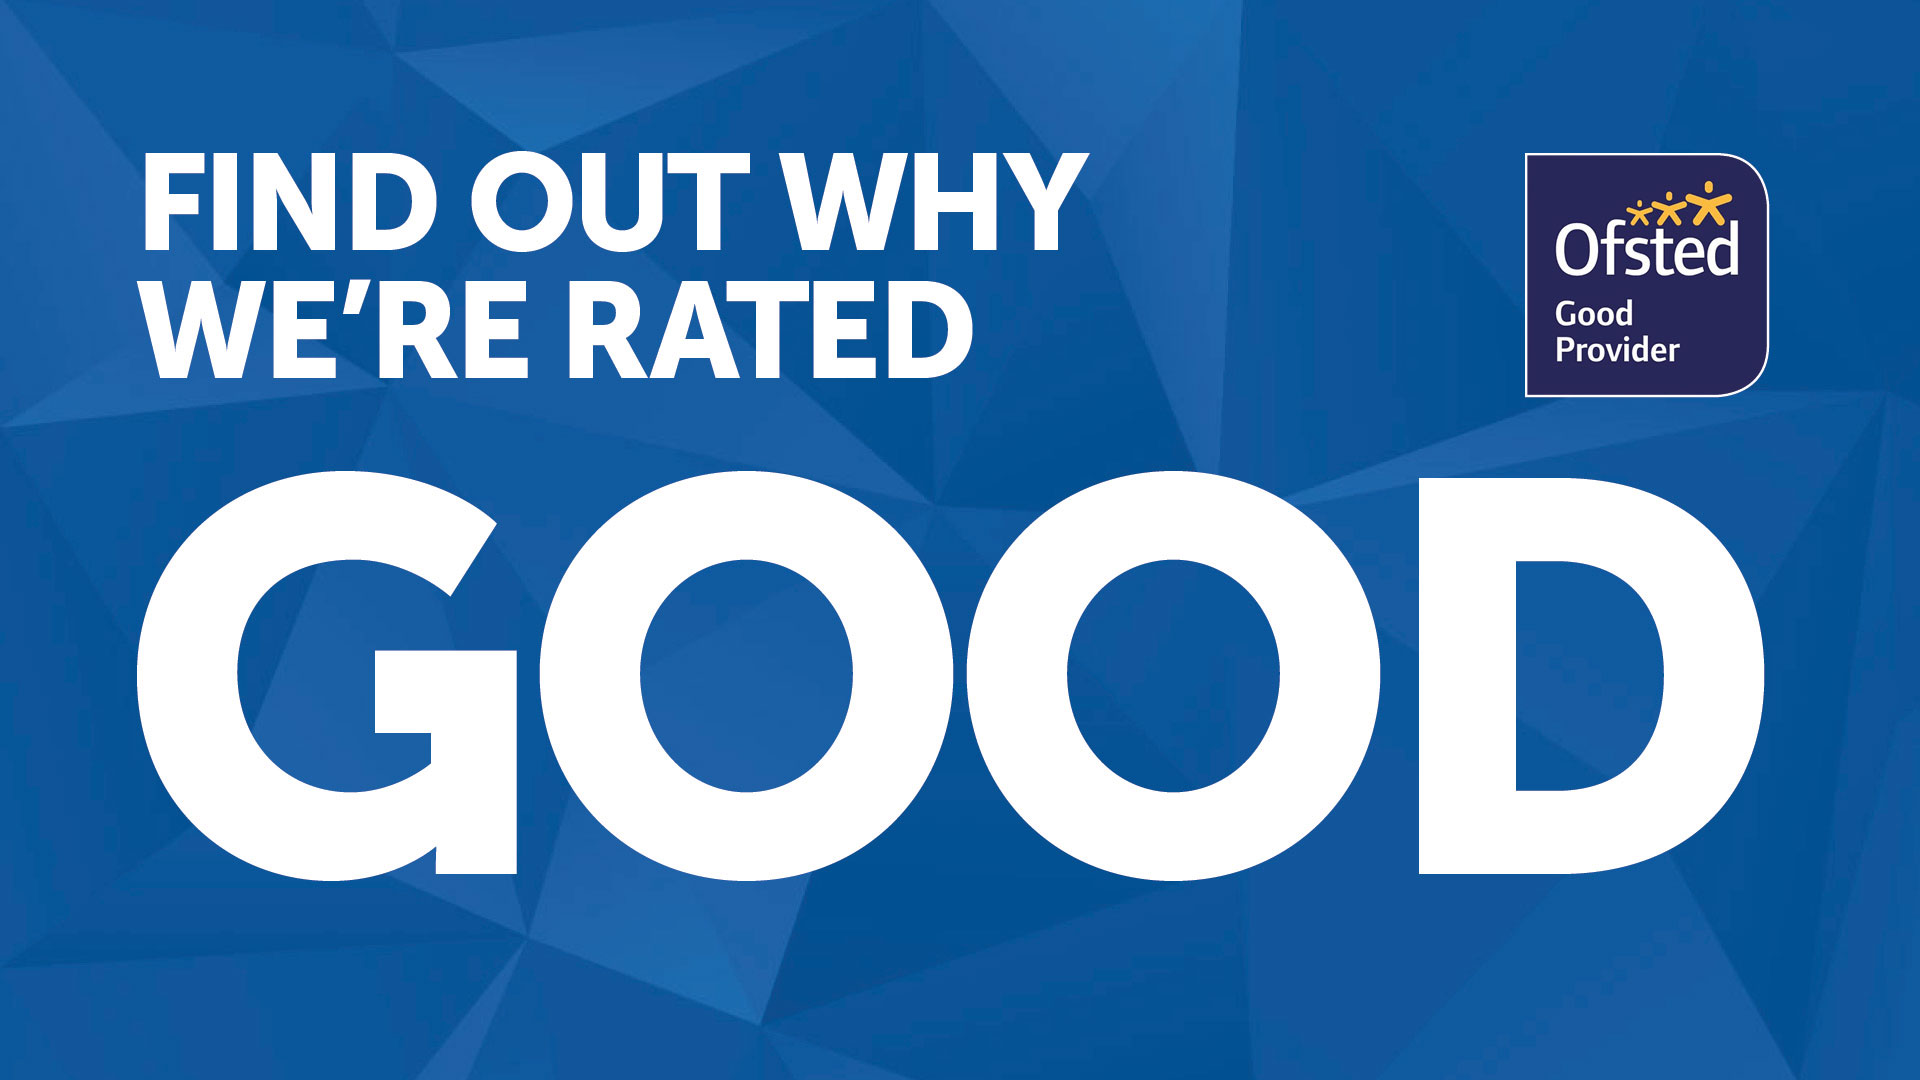 Rated Good